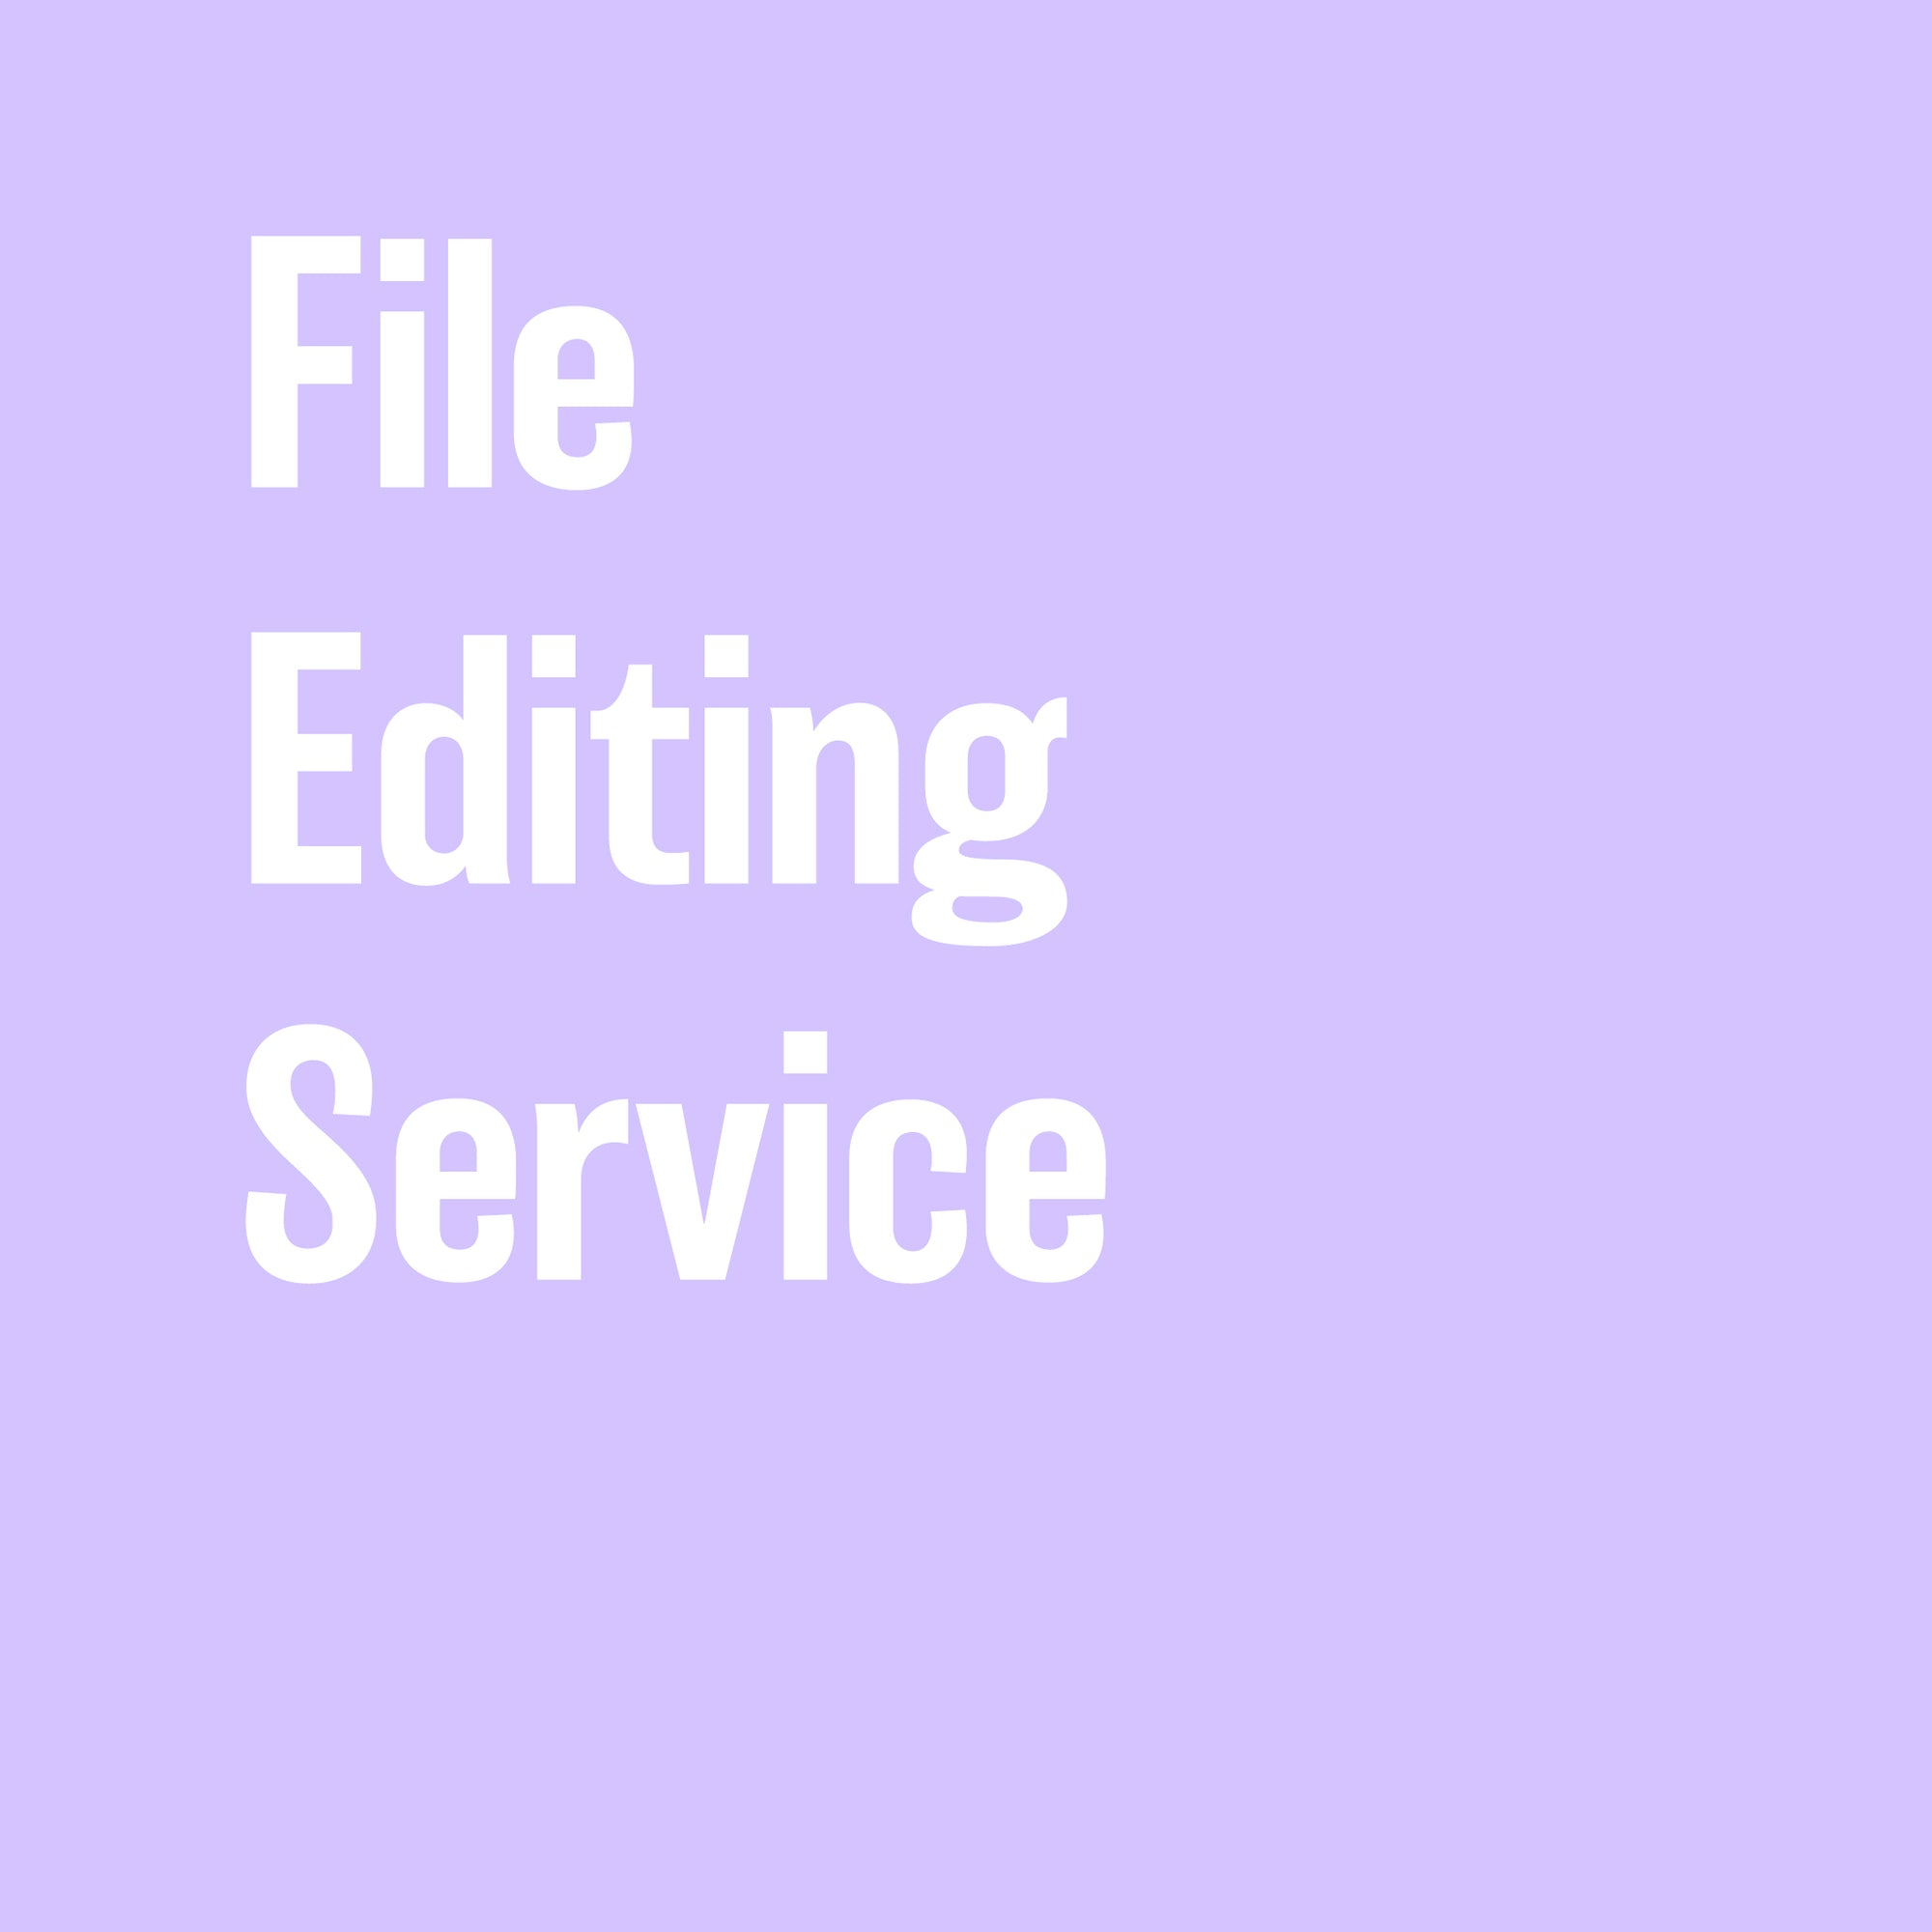 File Editing Service - Scanned or Photographed Images